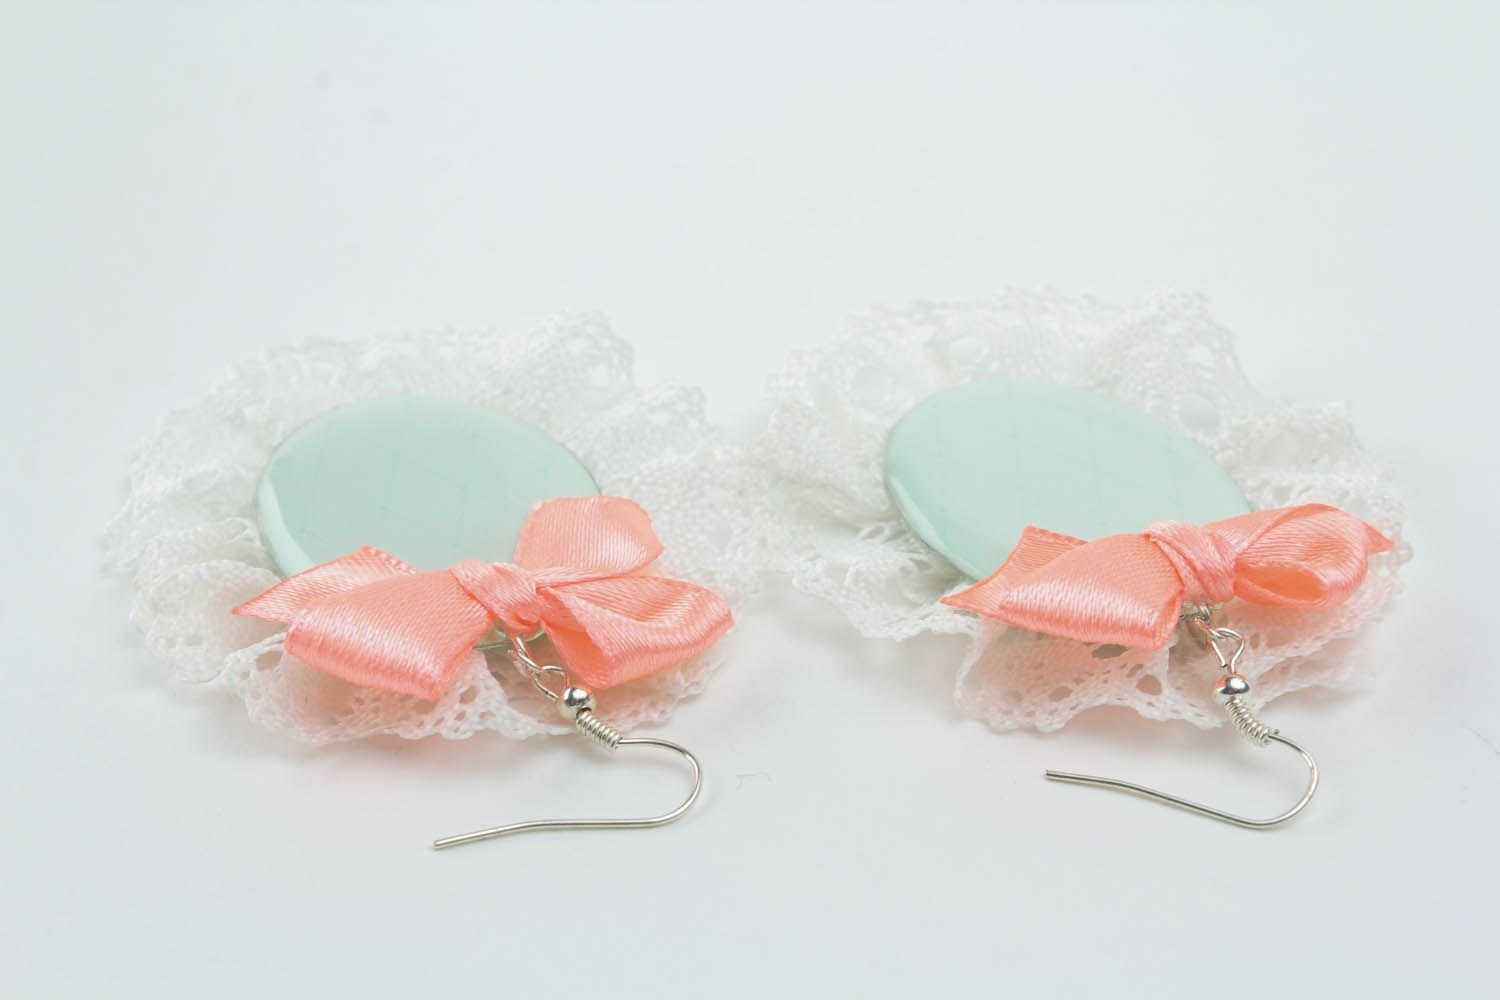 Earrings with lace and bows photo 2